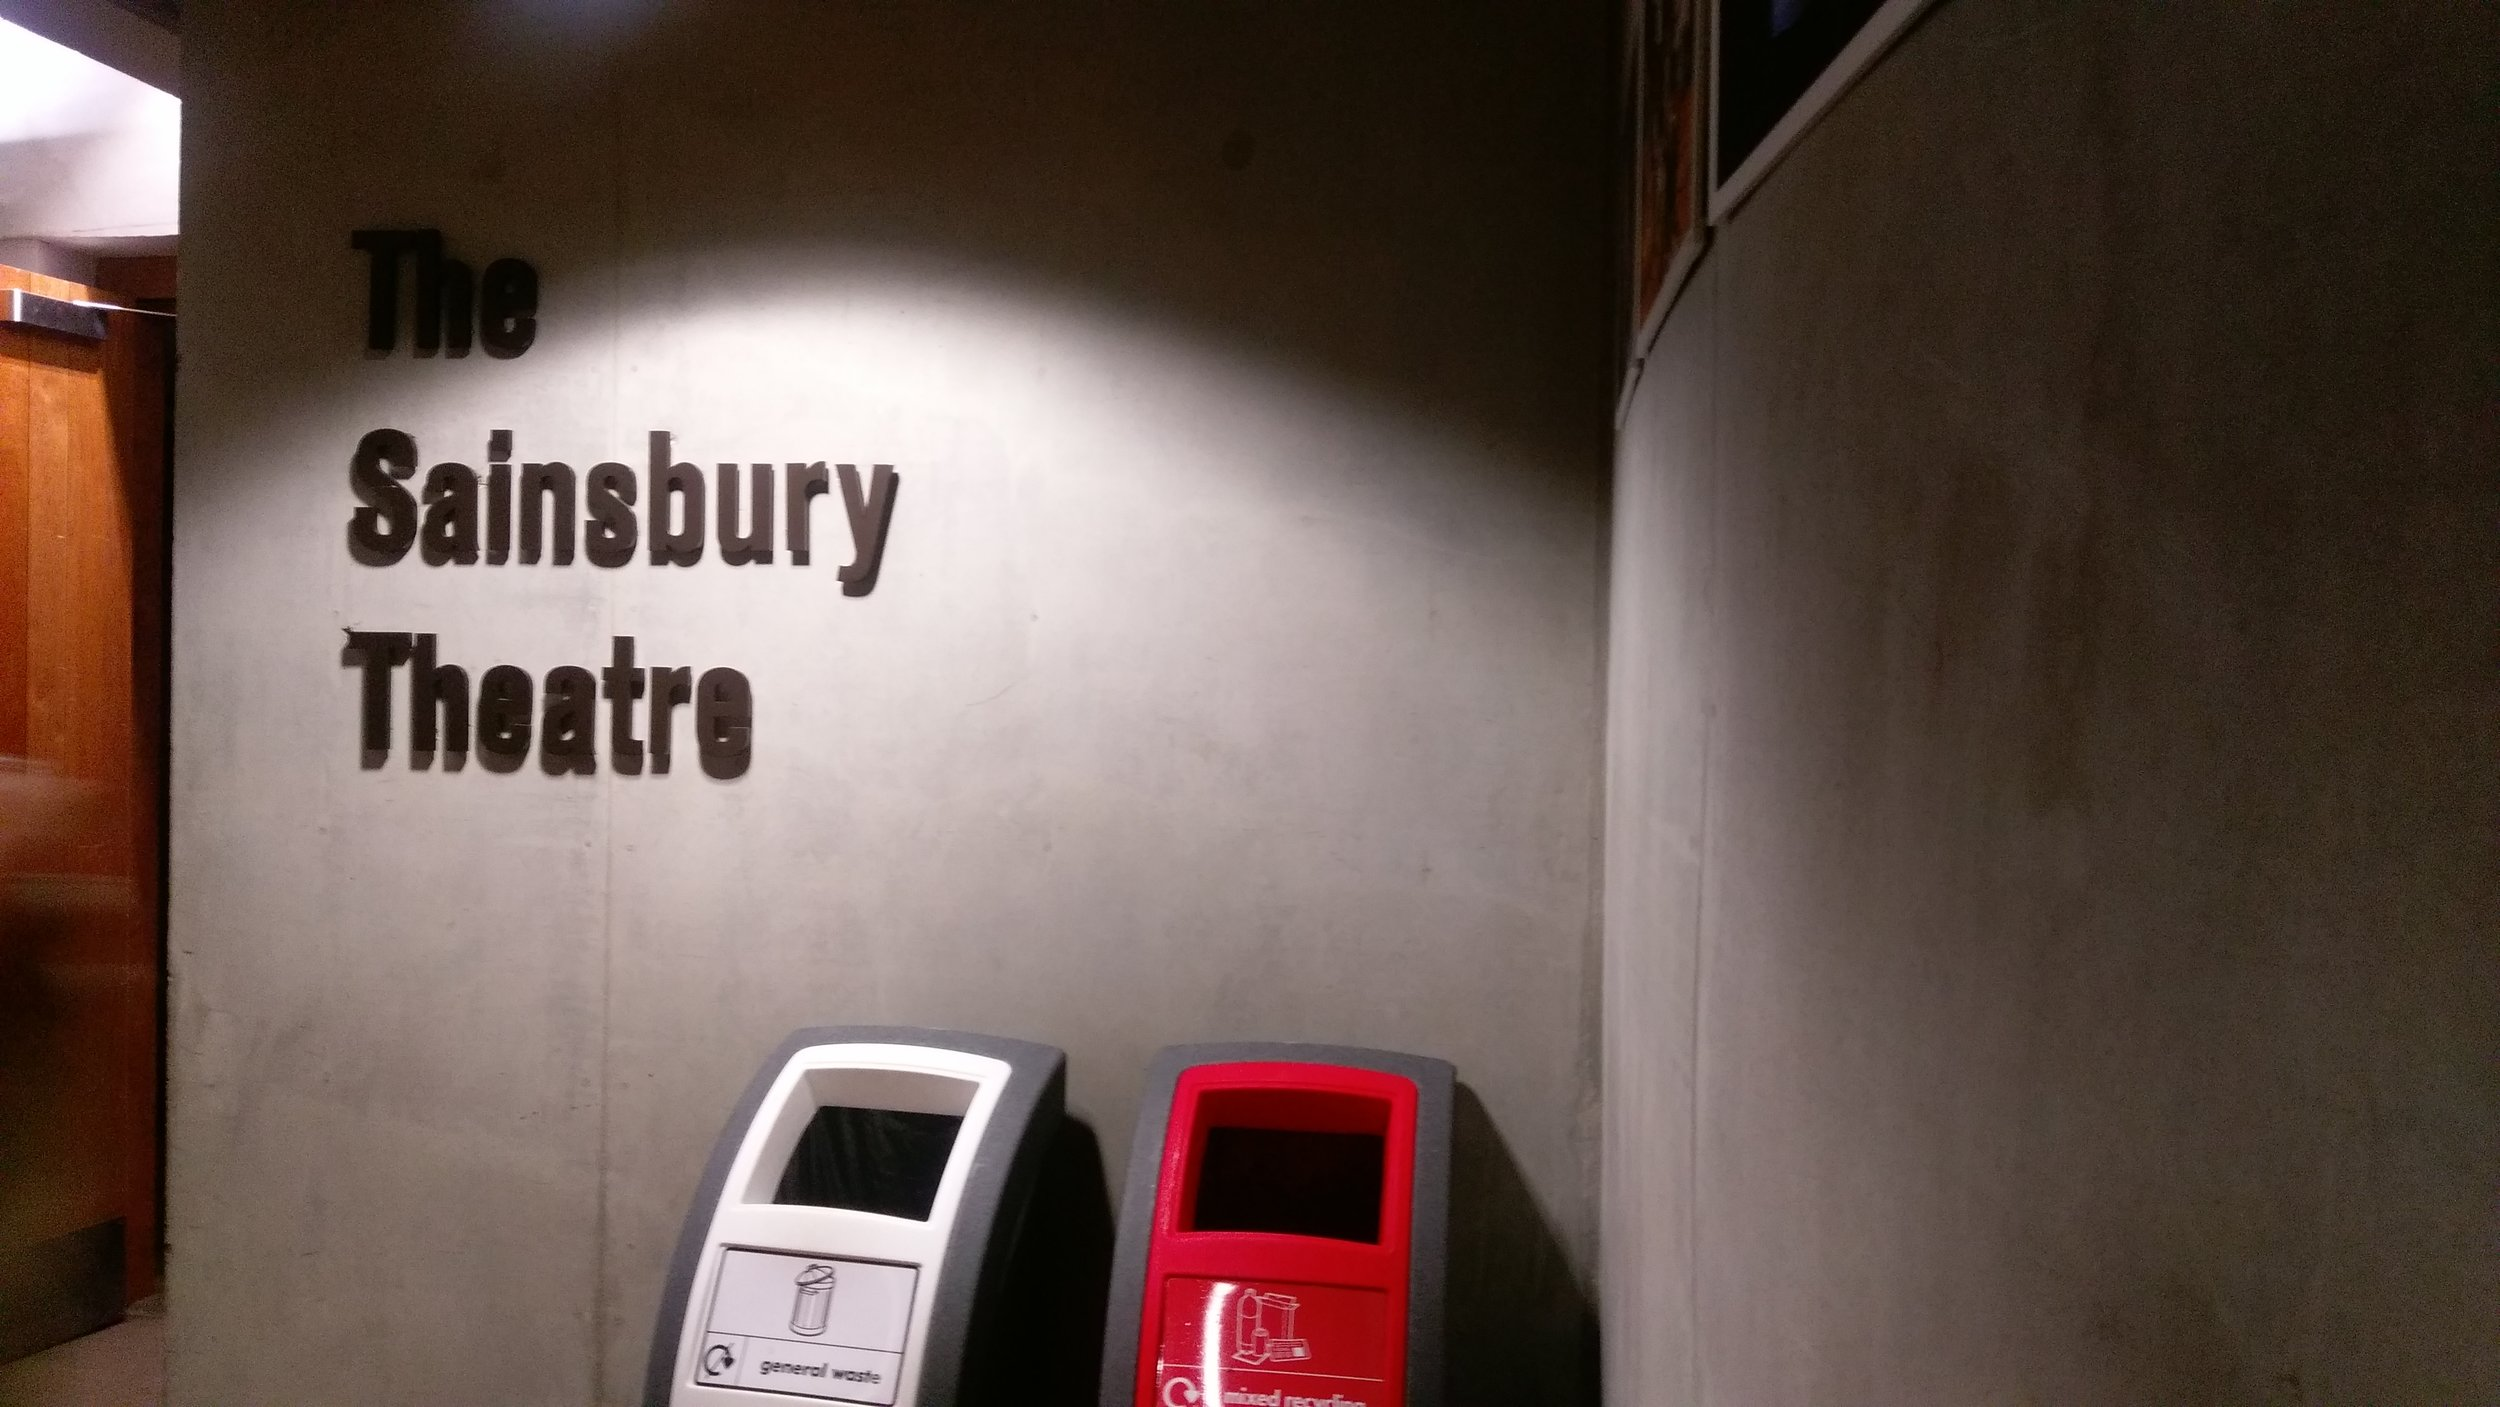 LAMDA(THe Sainsbury Theatre) - visited 20/02/2019